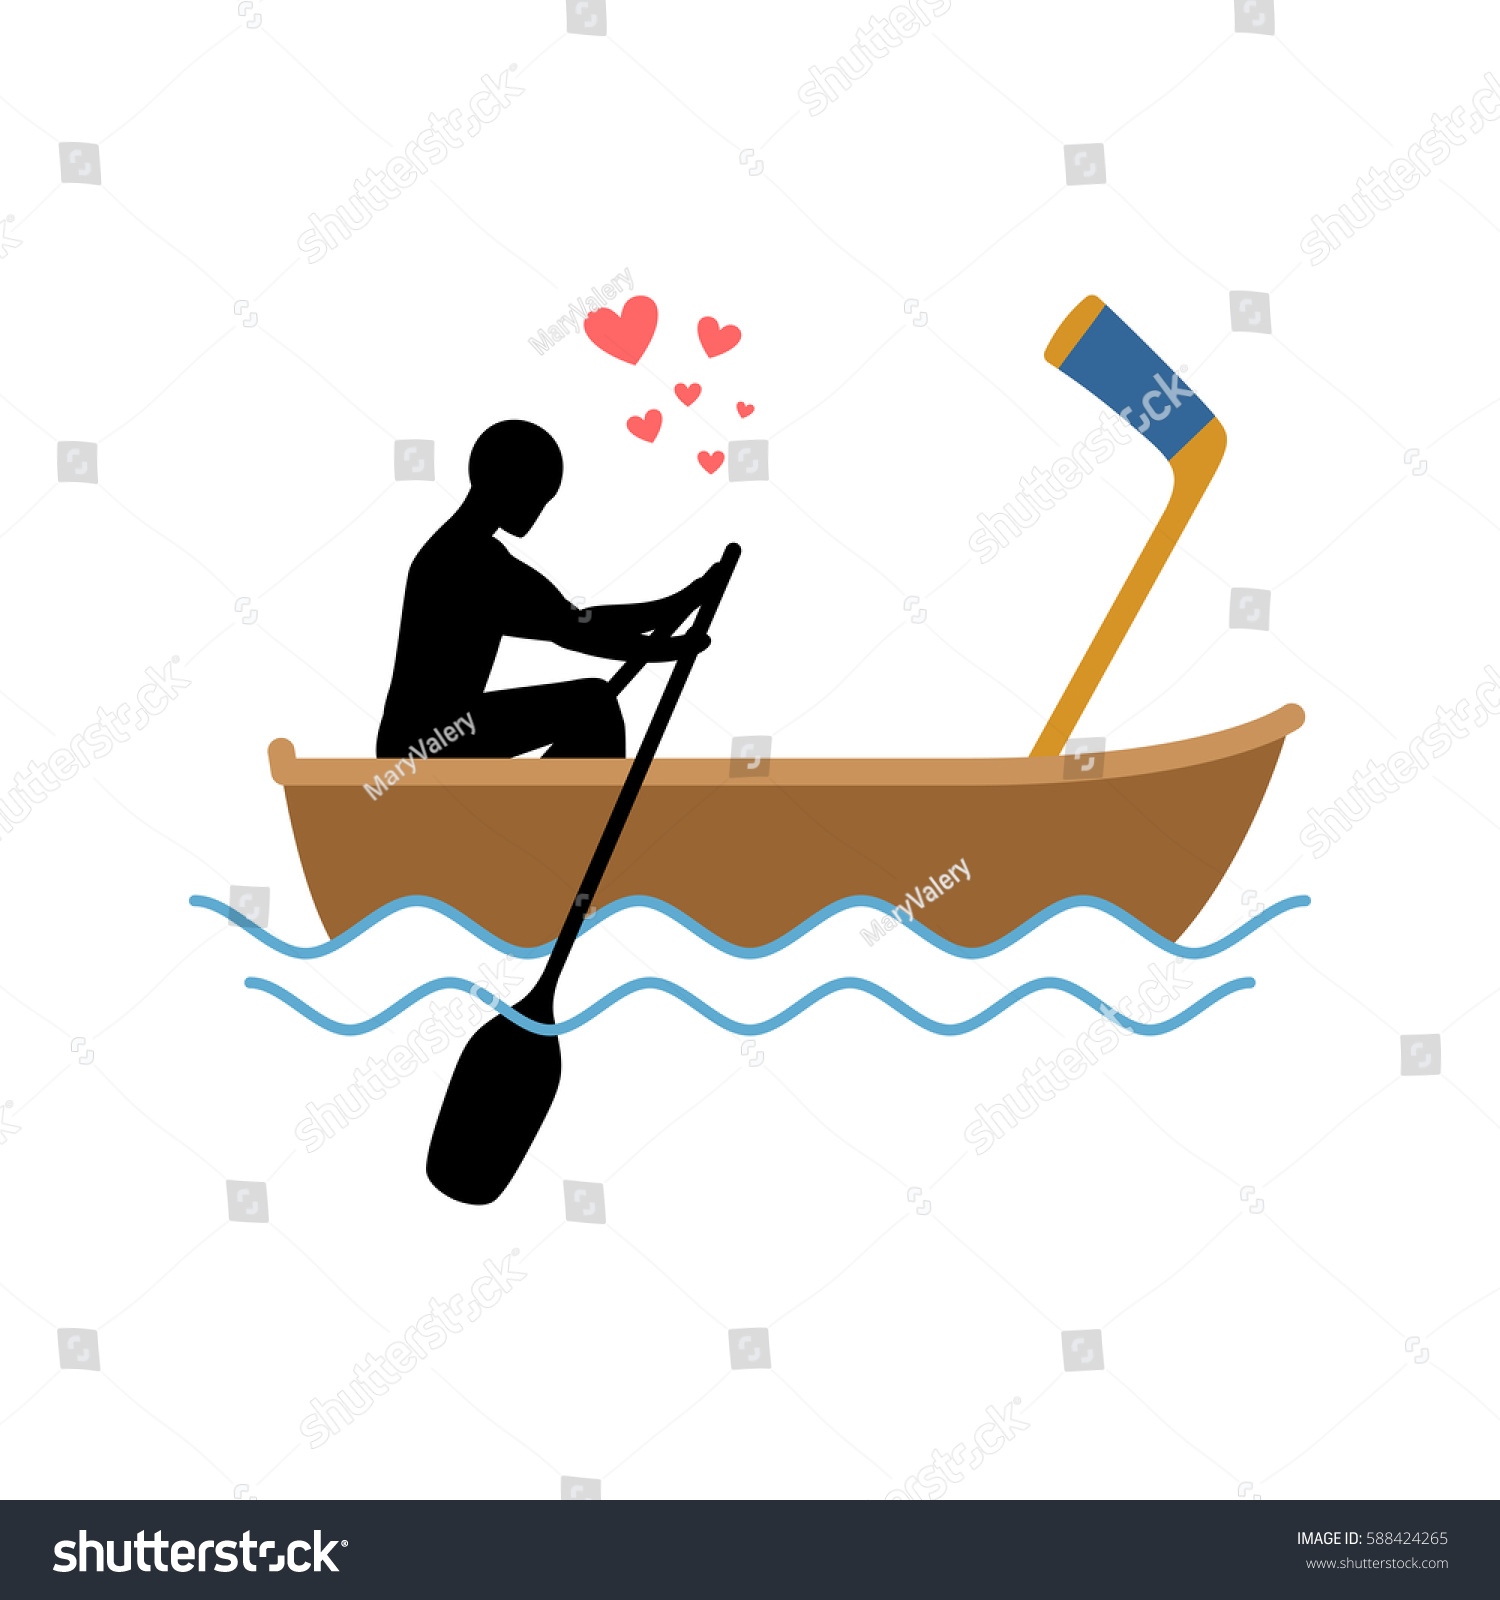 Boat dating website